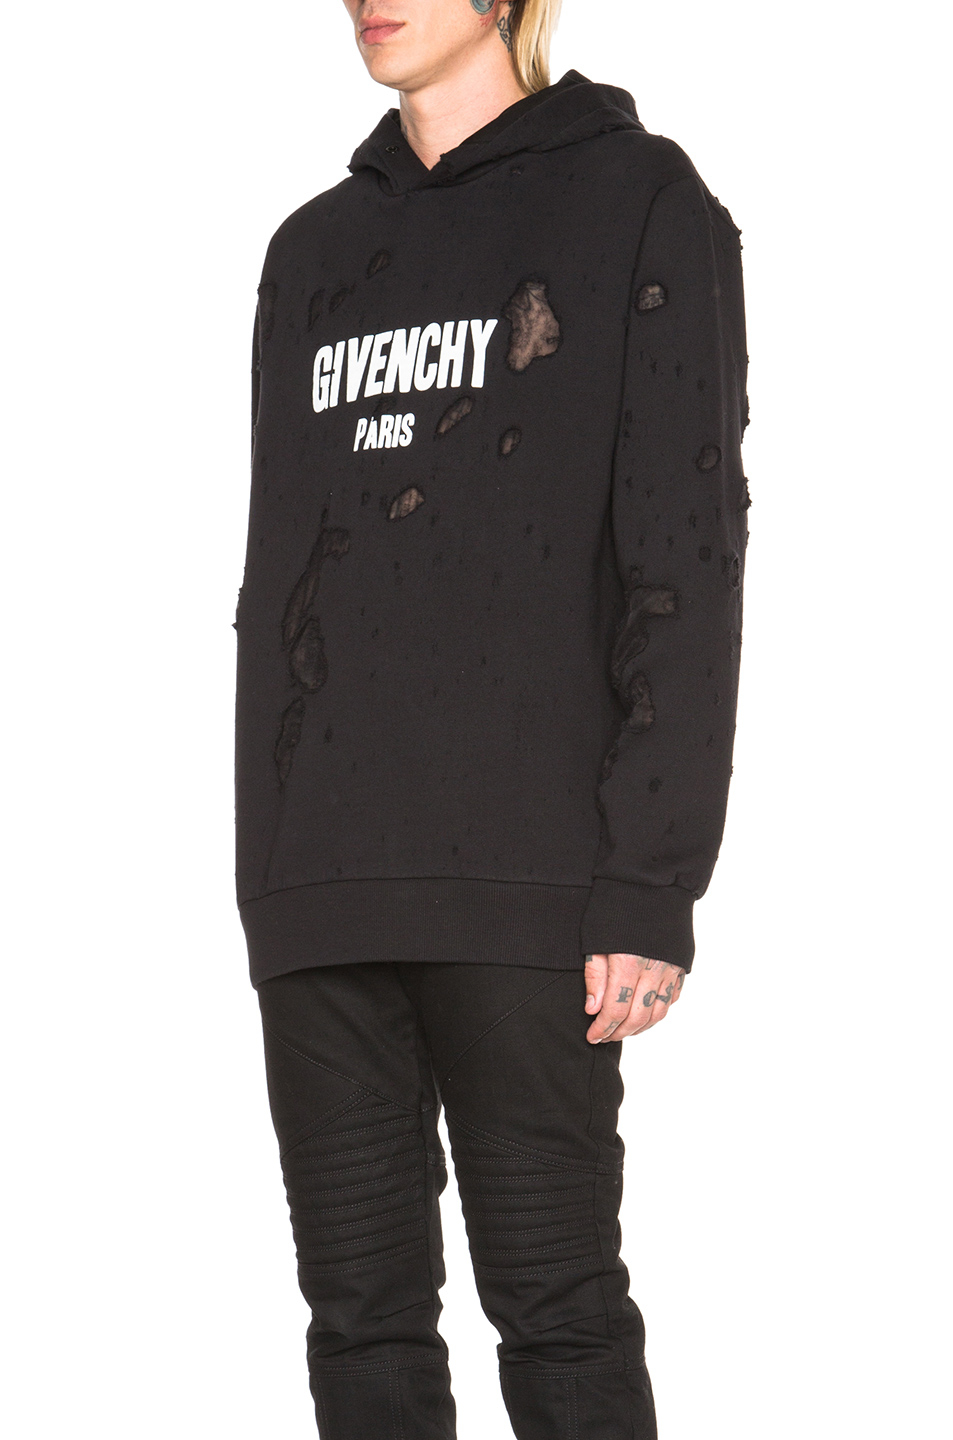 lyst givenchy paris hoodie in black